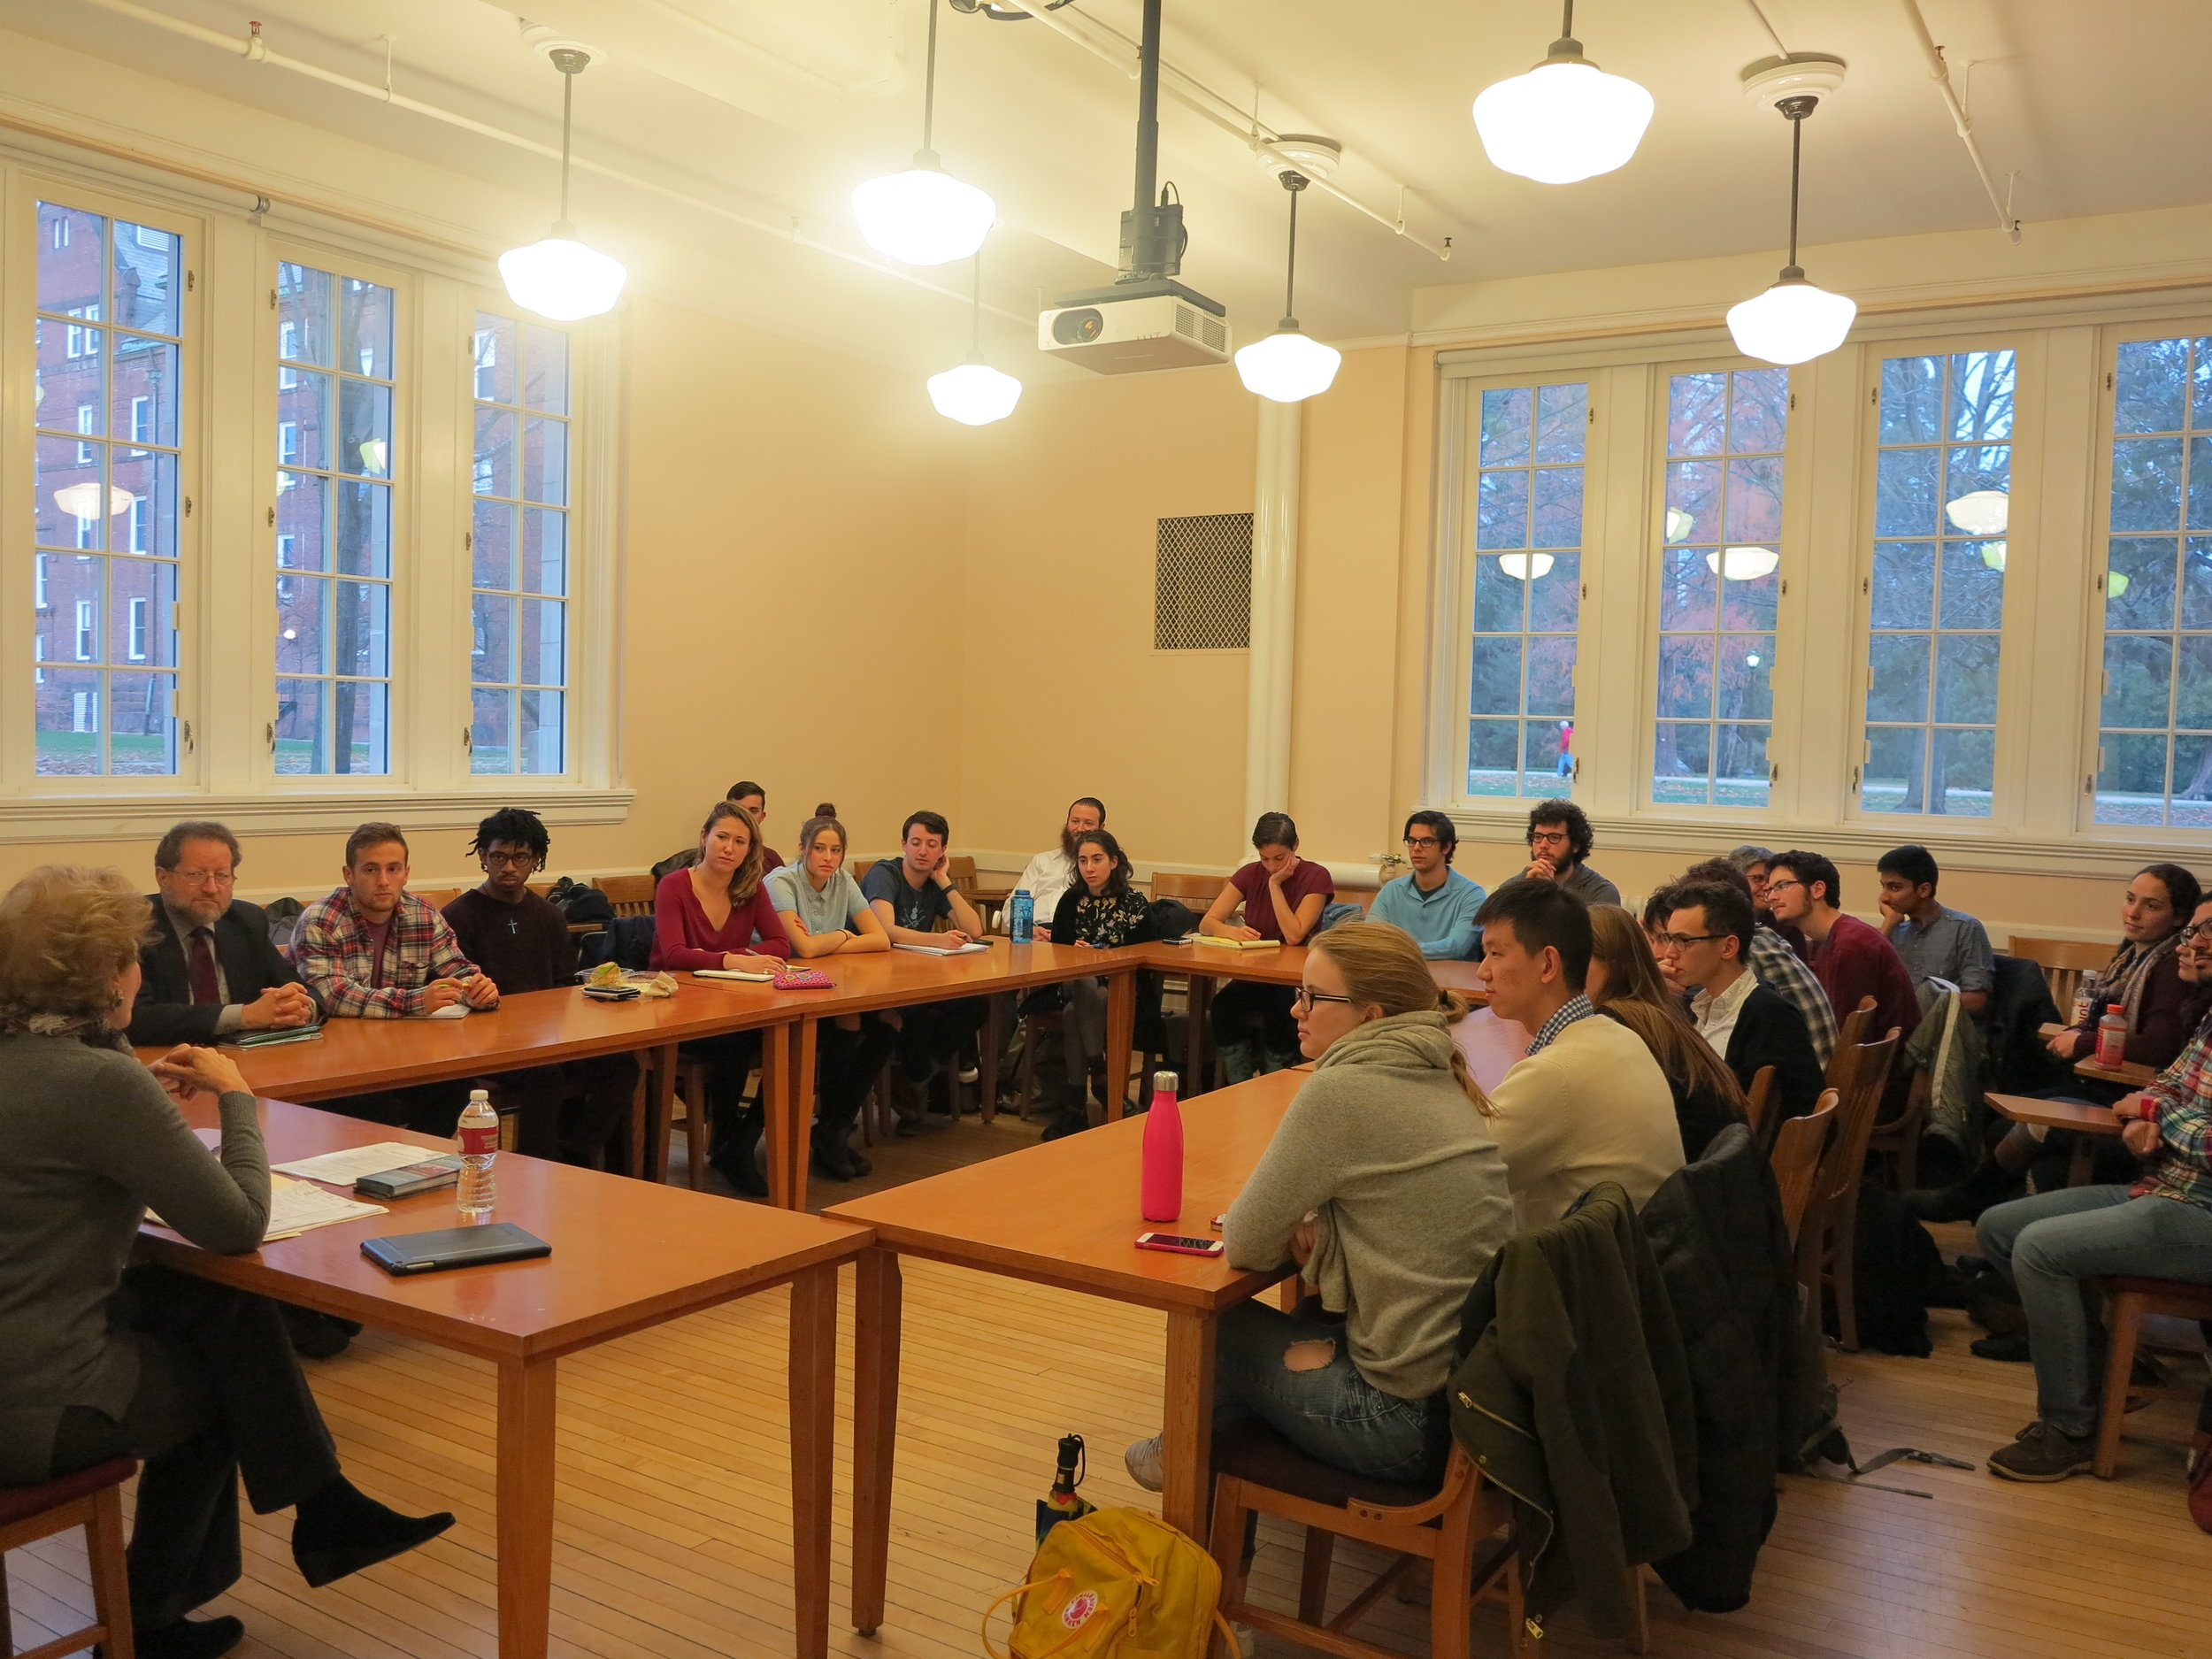 Dr. Georgette Bennett '69, delivers a lecture on the Jewish response to the Syrian Refugee Crisis